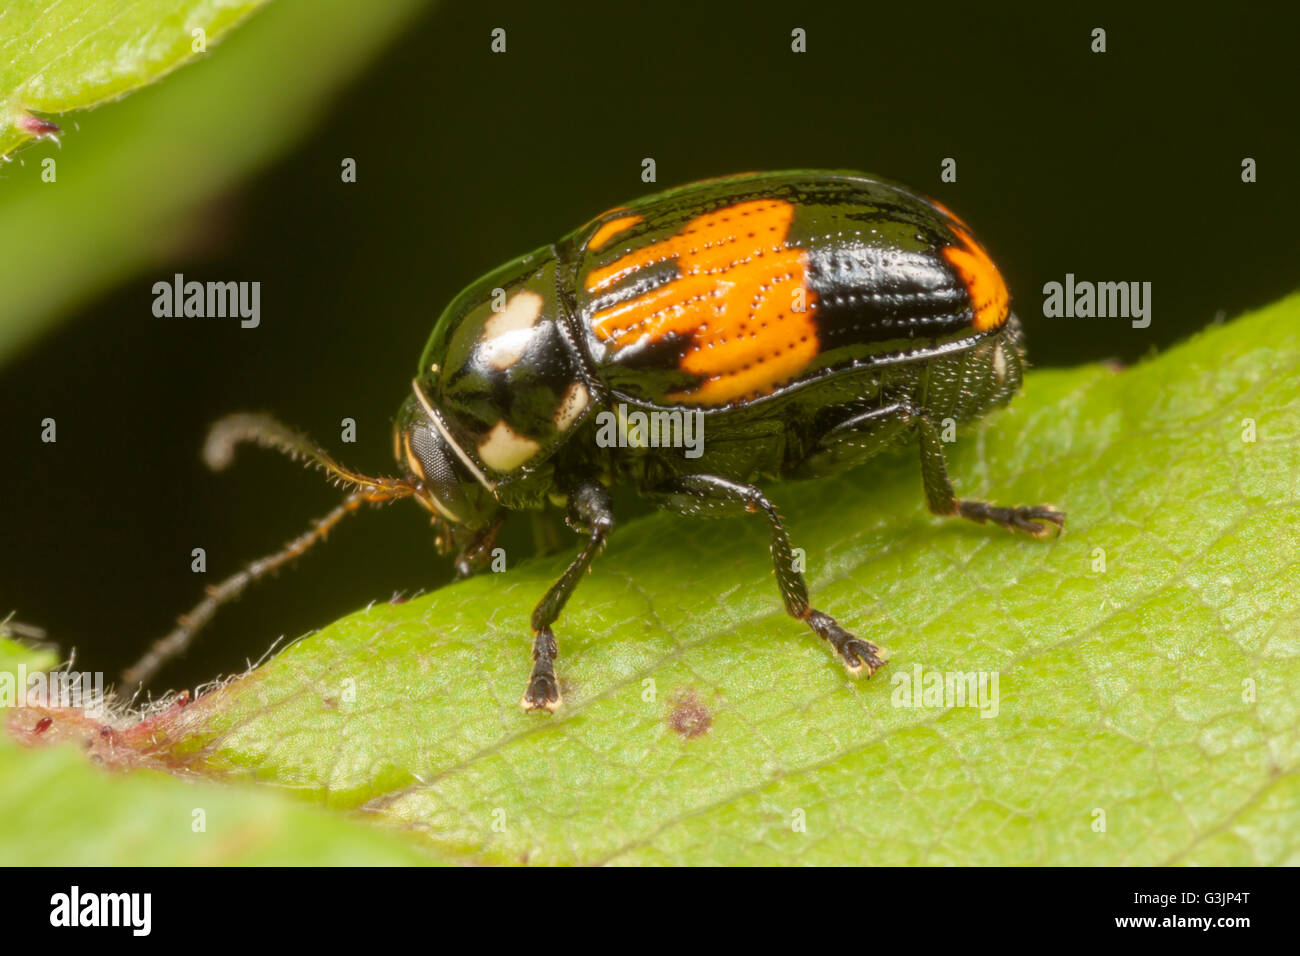 A Case-bearing Leaf Beetle (Bassareus mammifer) perches on a leaf. - Stock Image